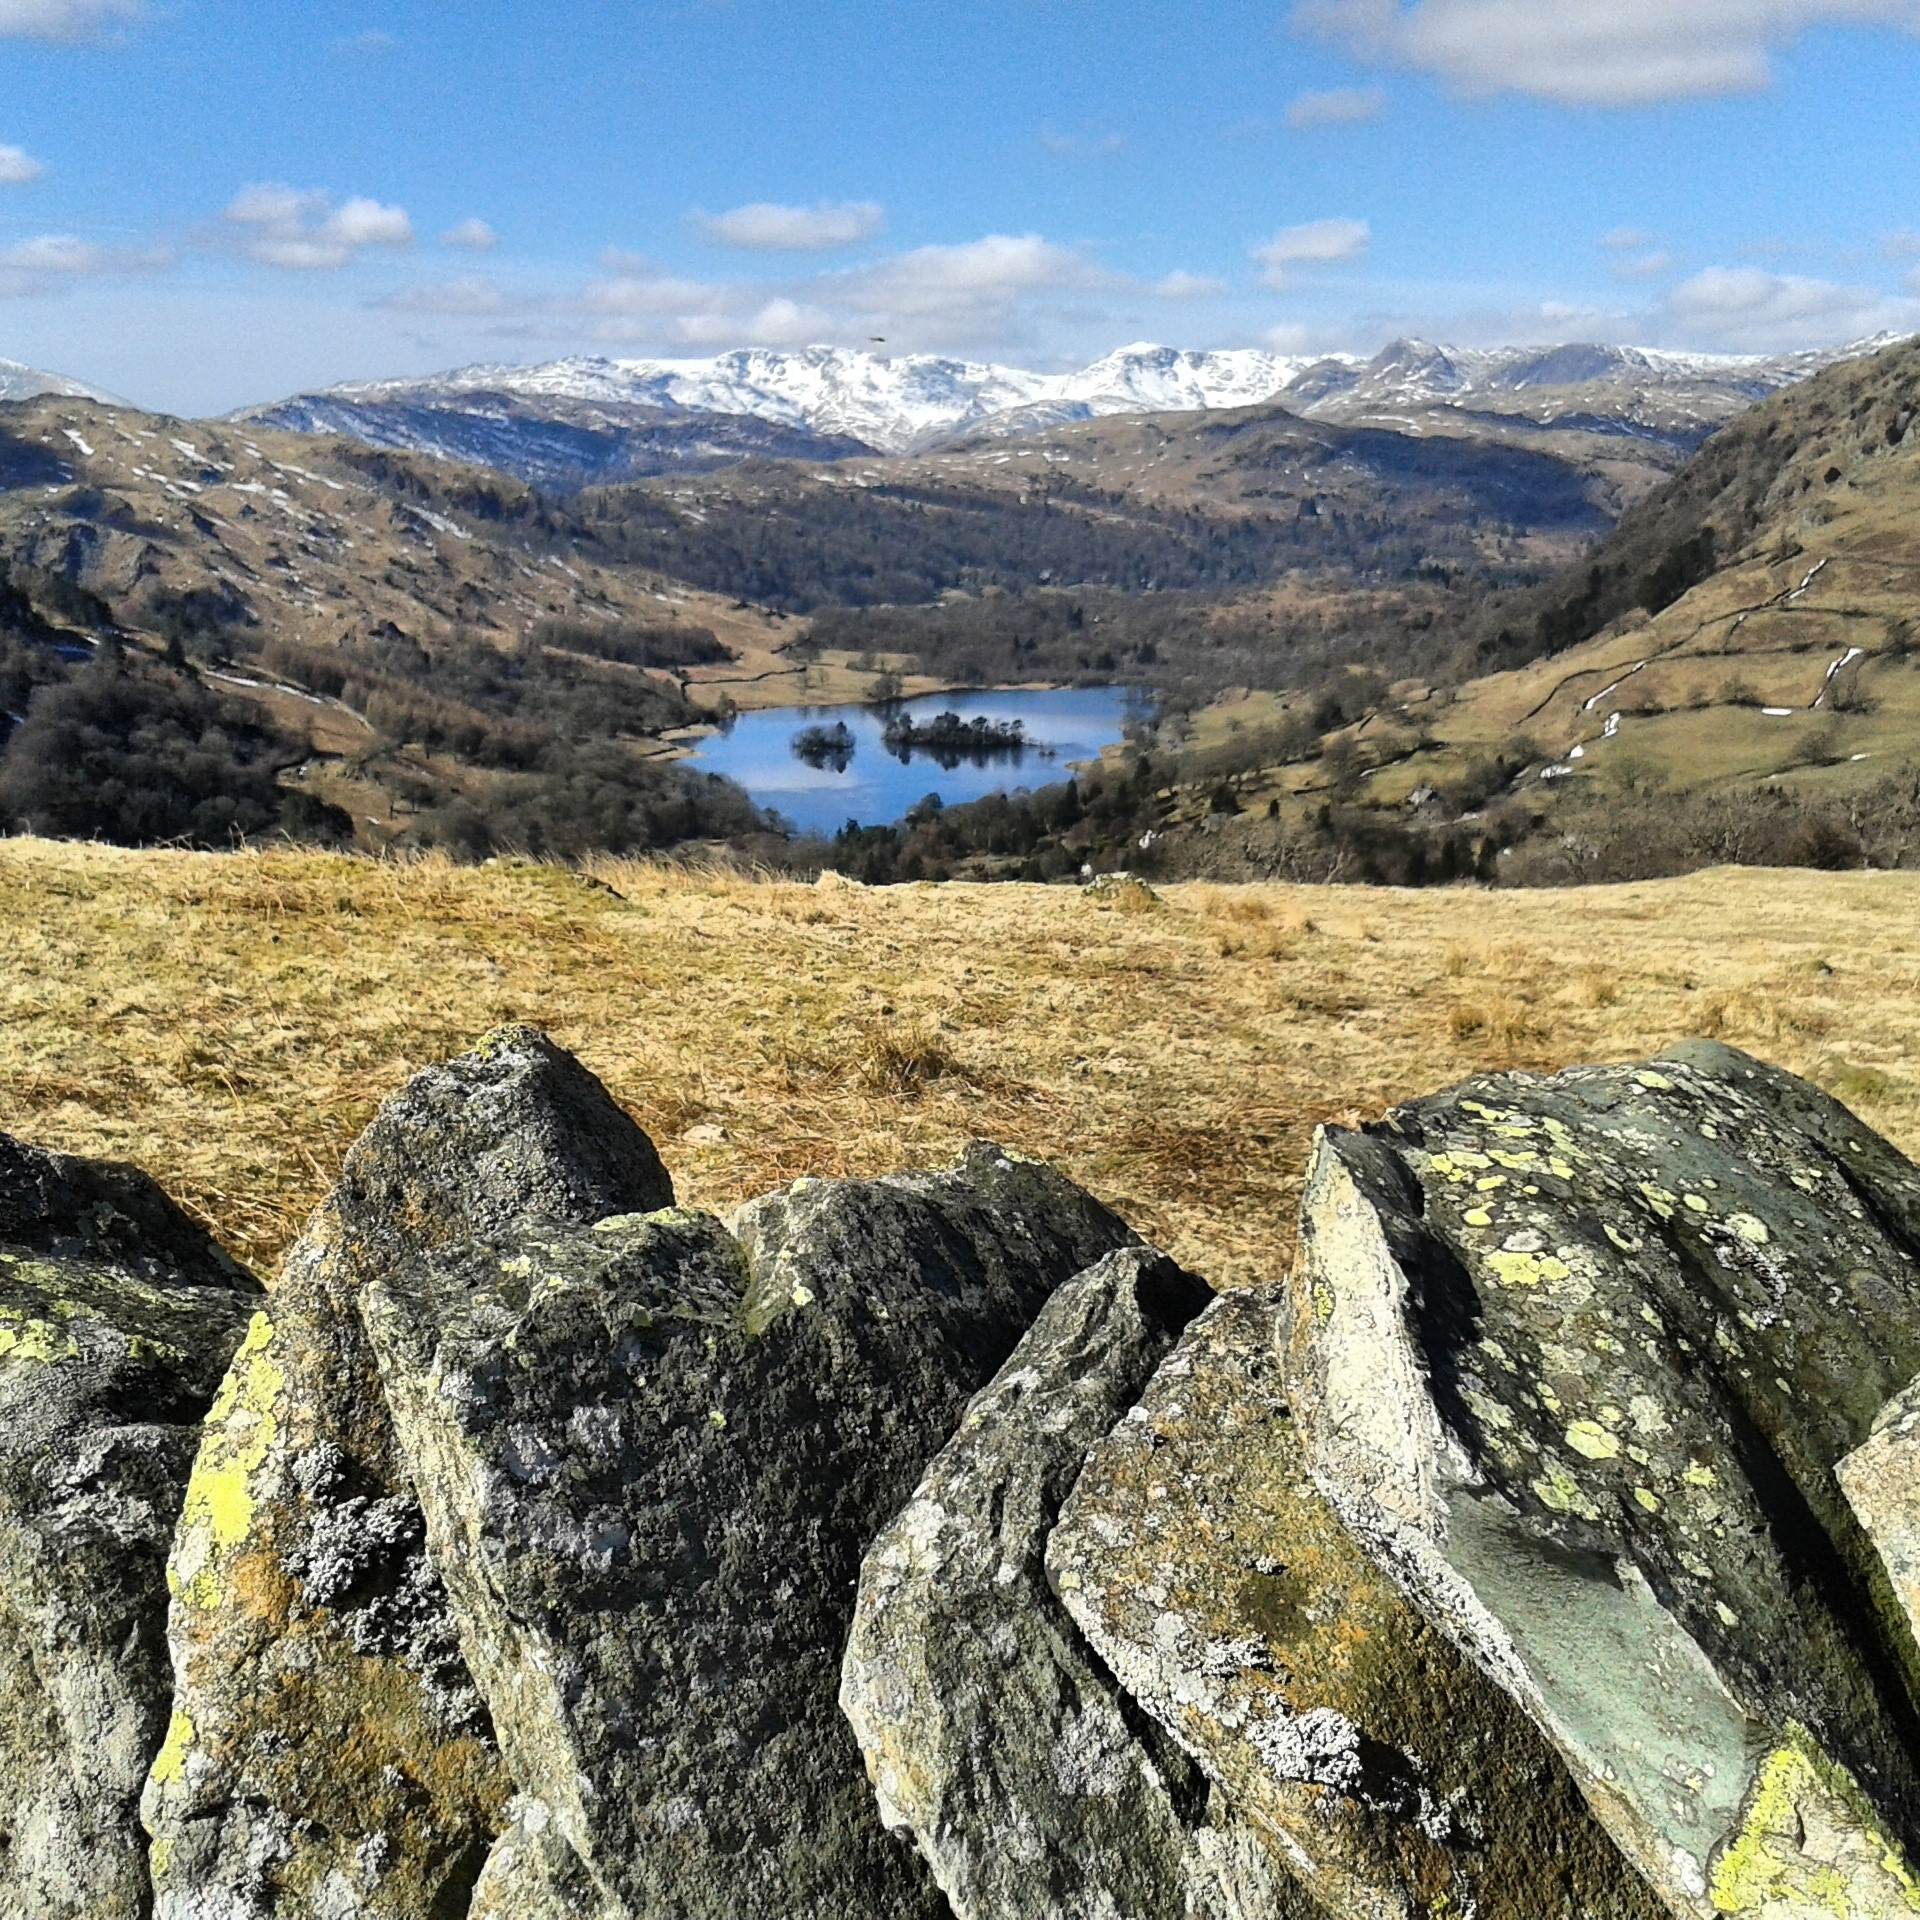 View of Rydal Water on the way to High Sweden Bridge